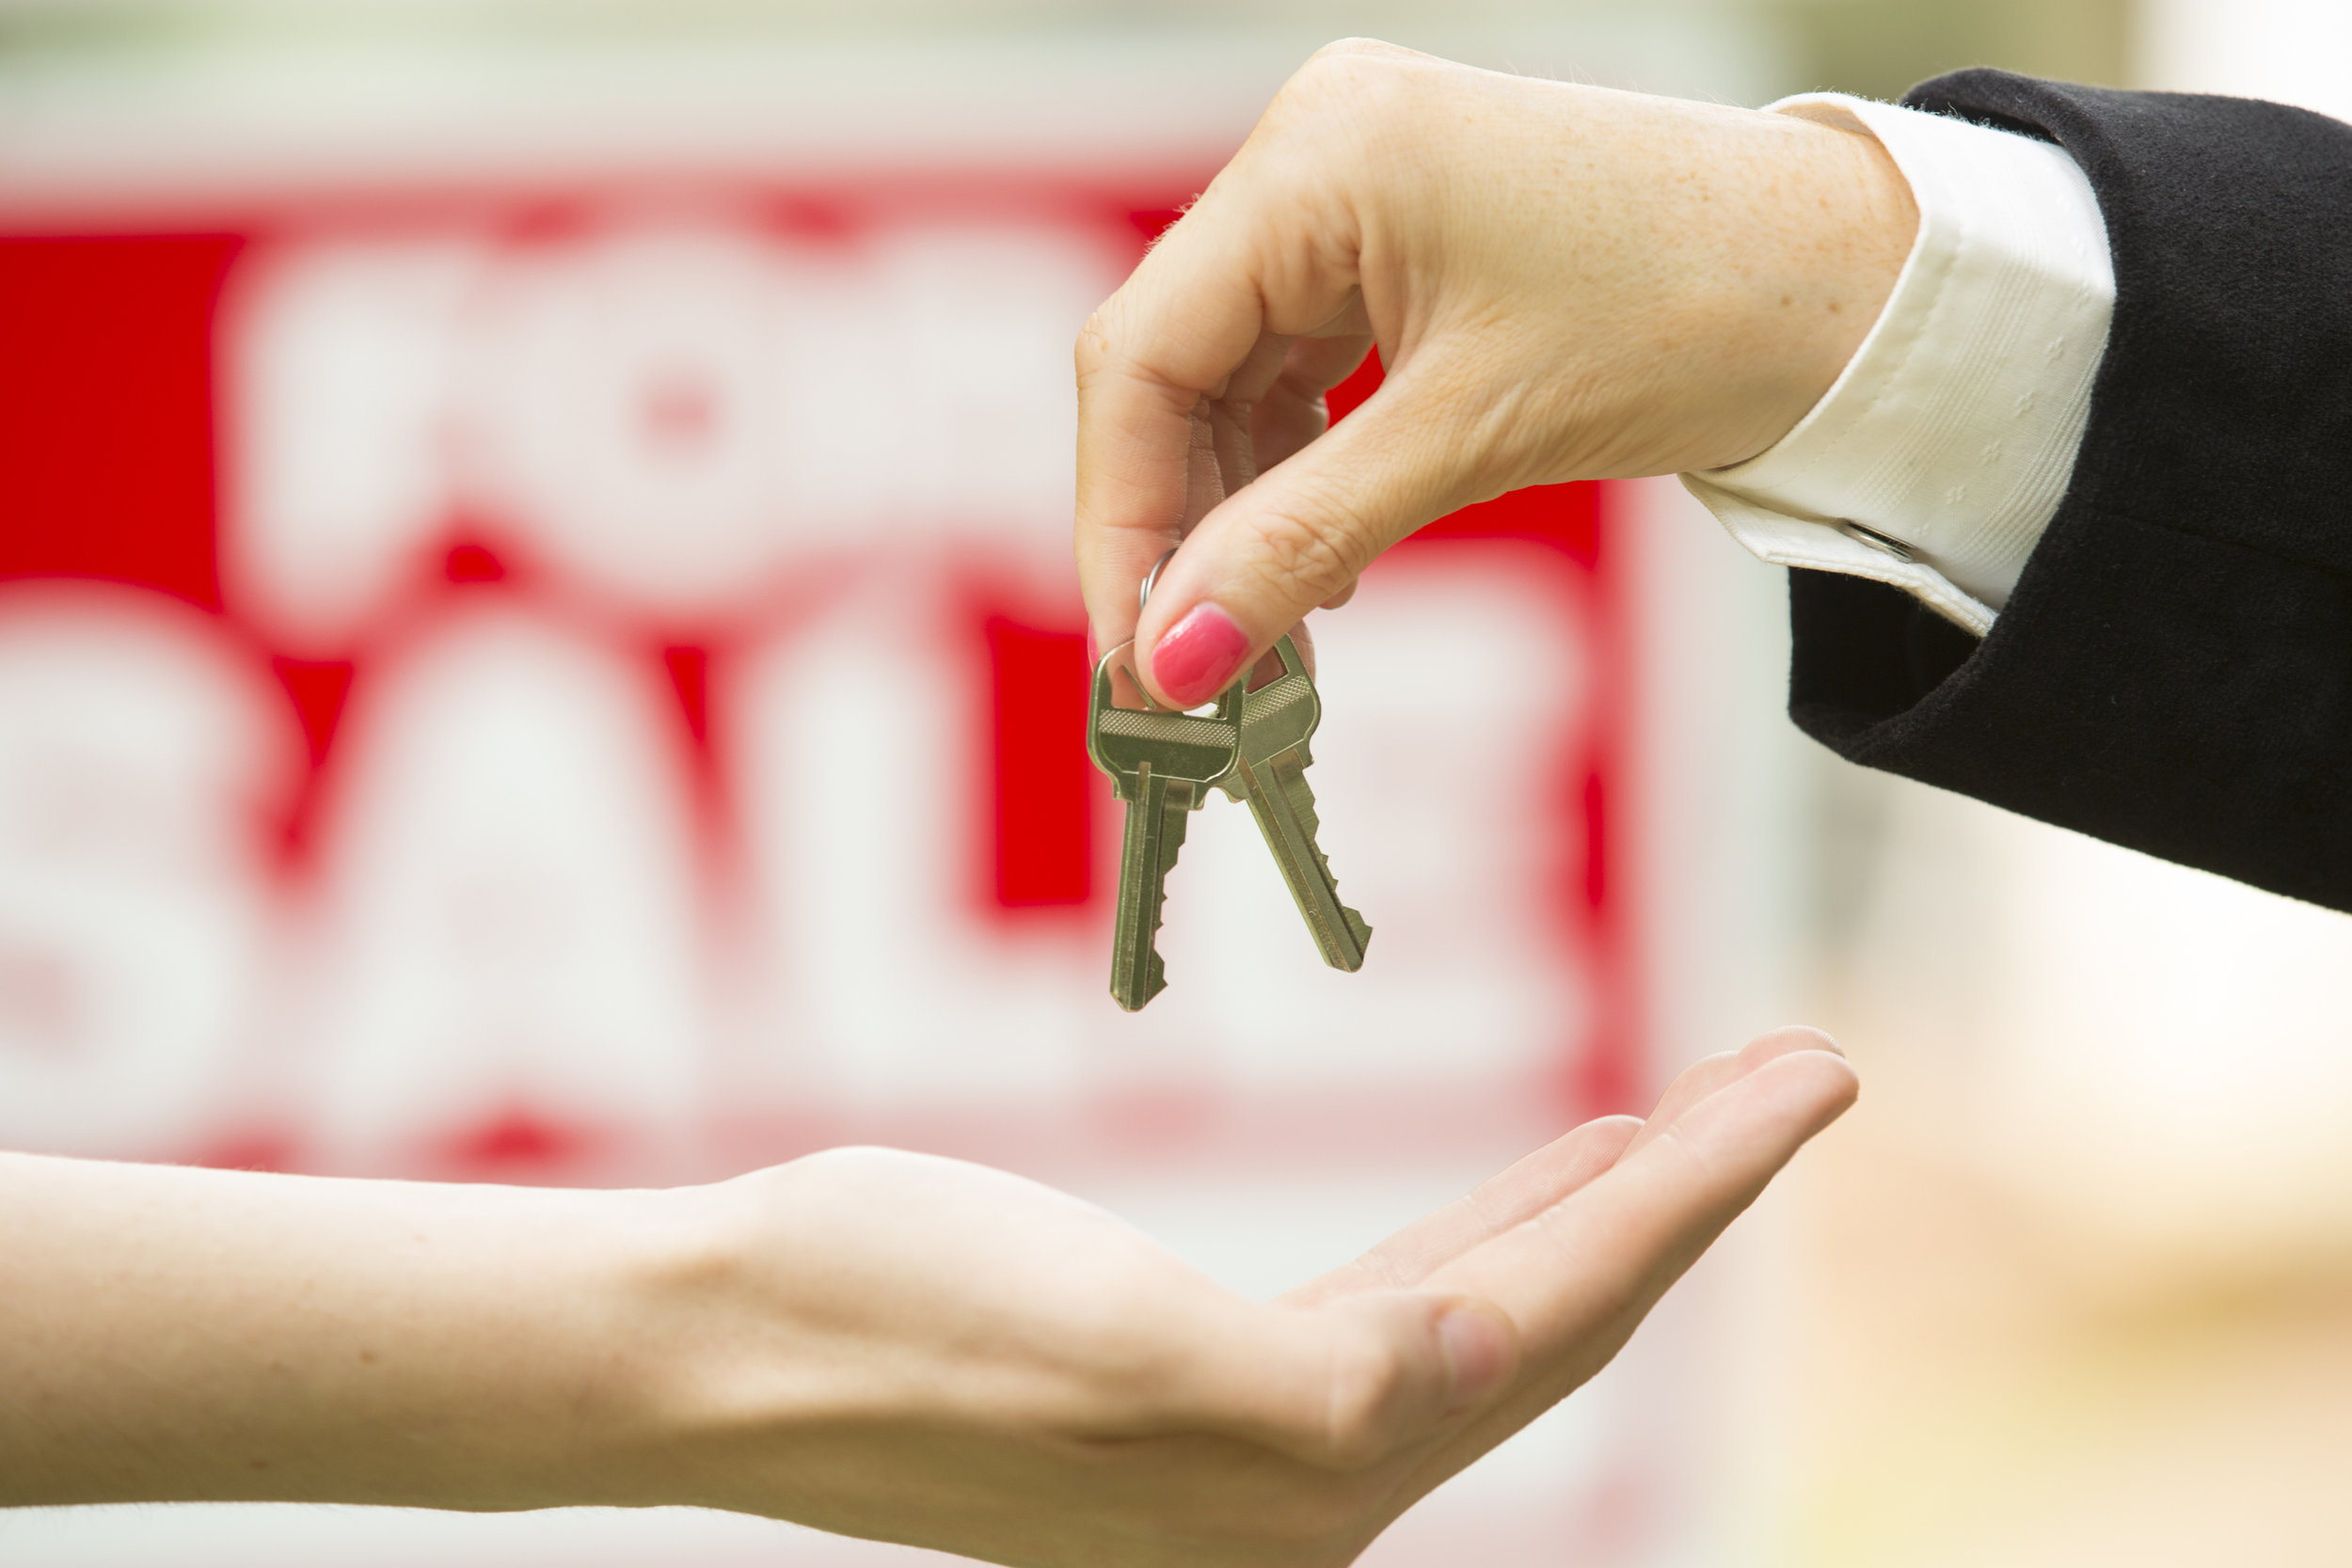 Craig Belmondo   at McLean Mortgage Corporation   Looking to Purchase or Refinance?   Get Started